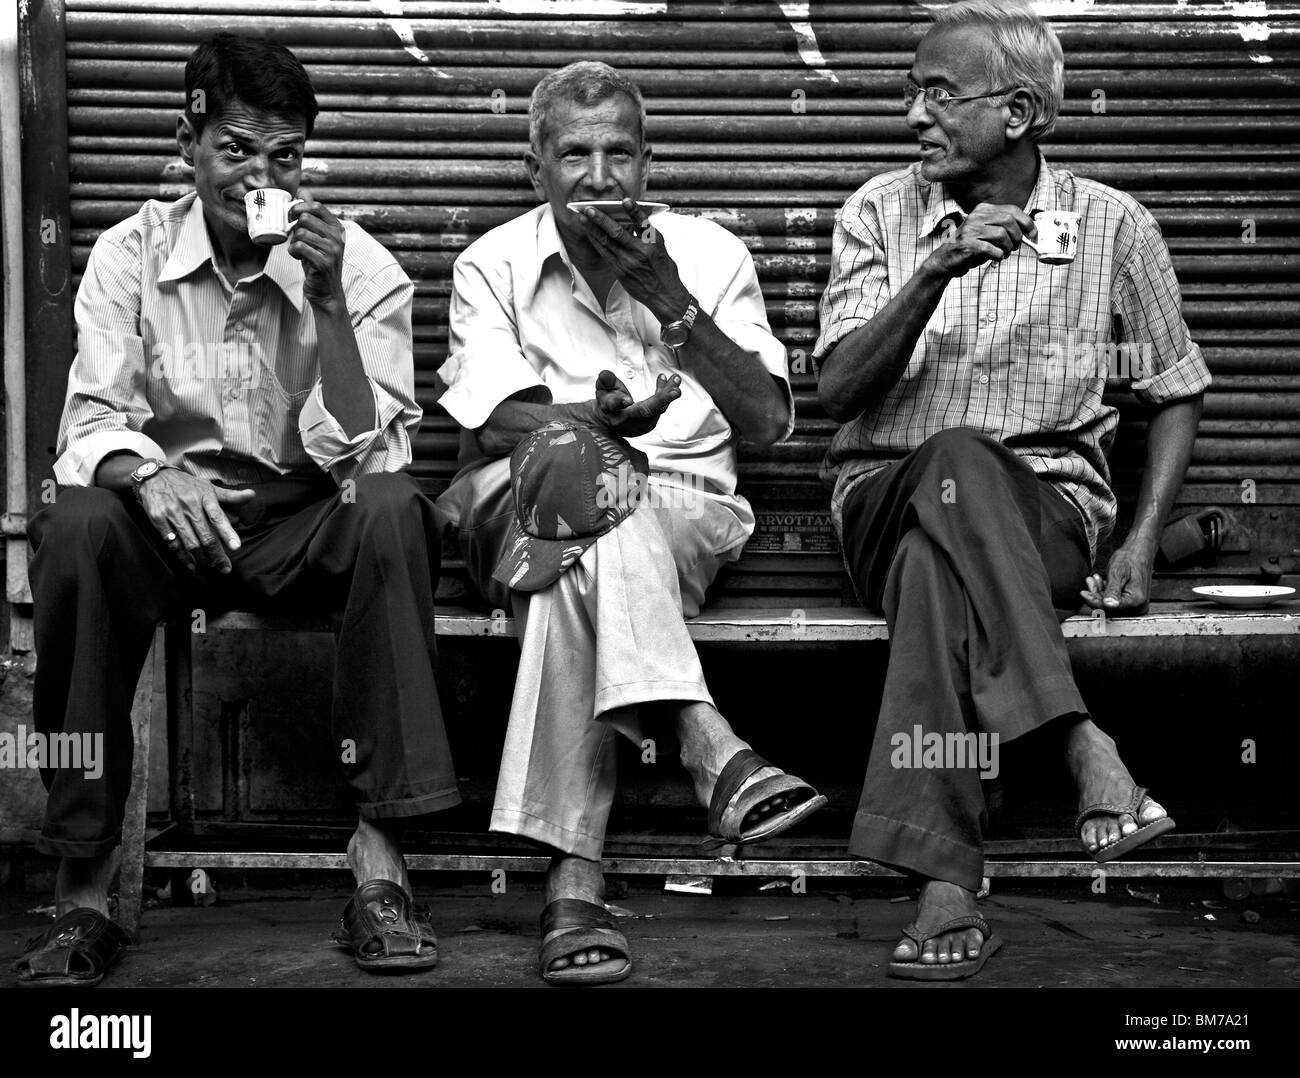 men drink tea in the old town in Ahmedabad, Gujurat India - Stock Image